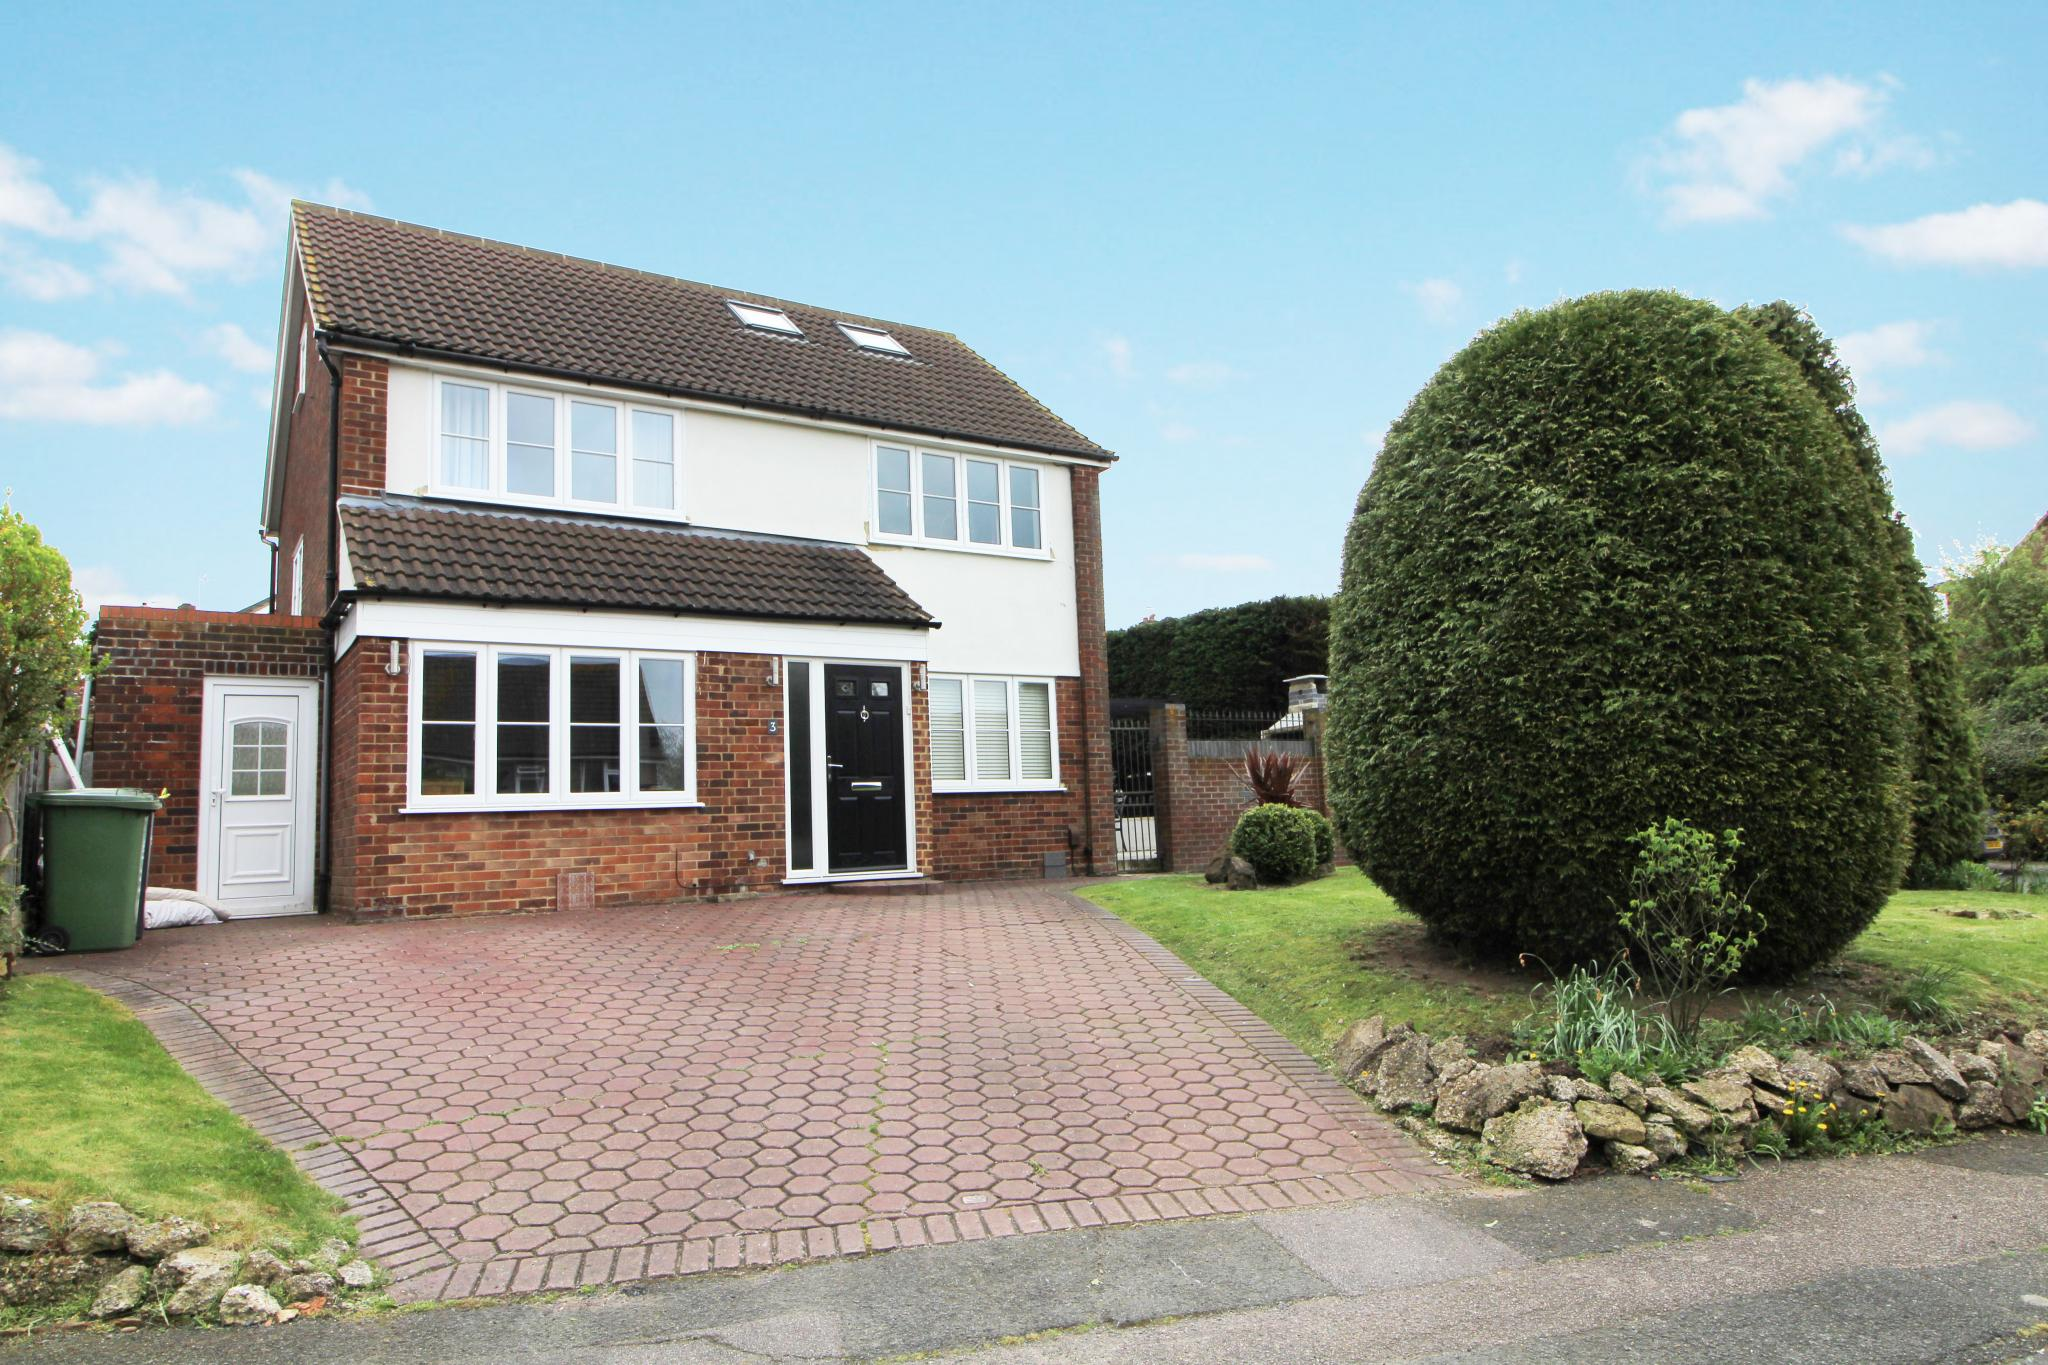 4 bedroom detached house For Sale in Goffs Oak - Property photograph